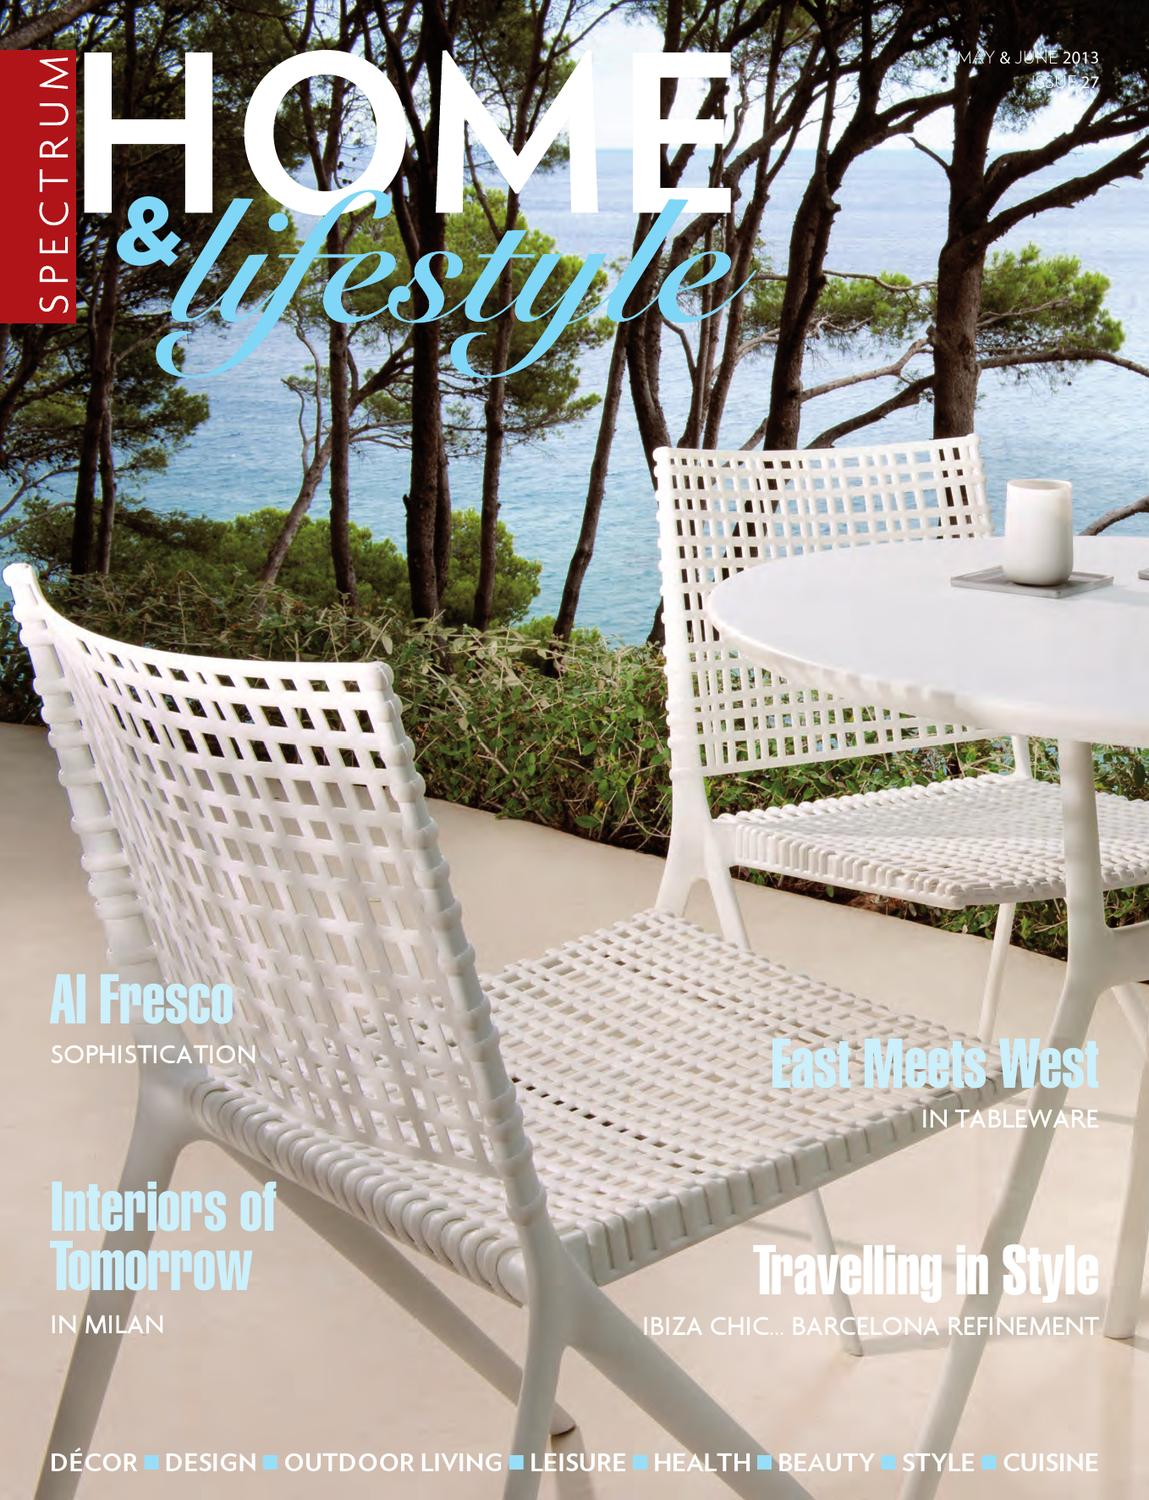 Home & Lifestyle Magazine Issue 27 by Home & Lifestyle